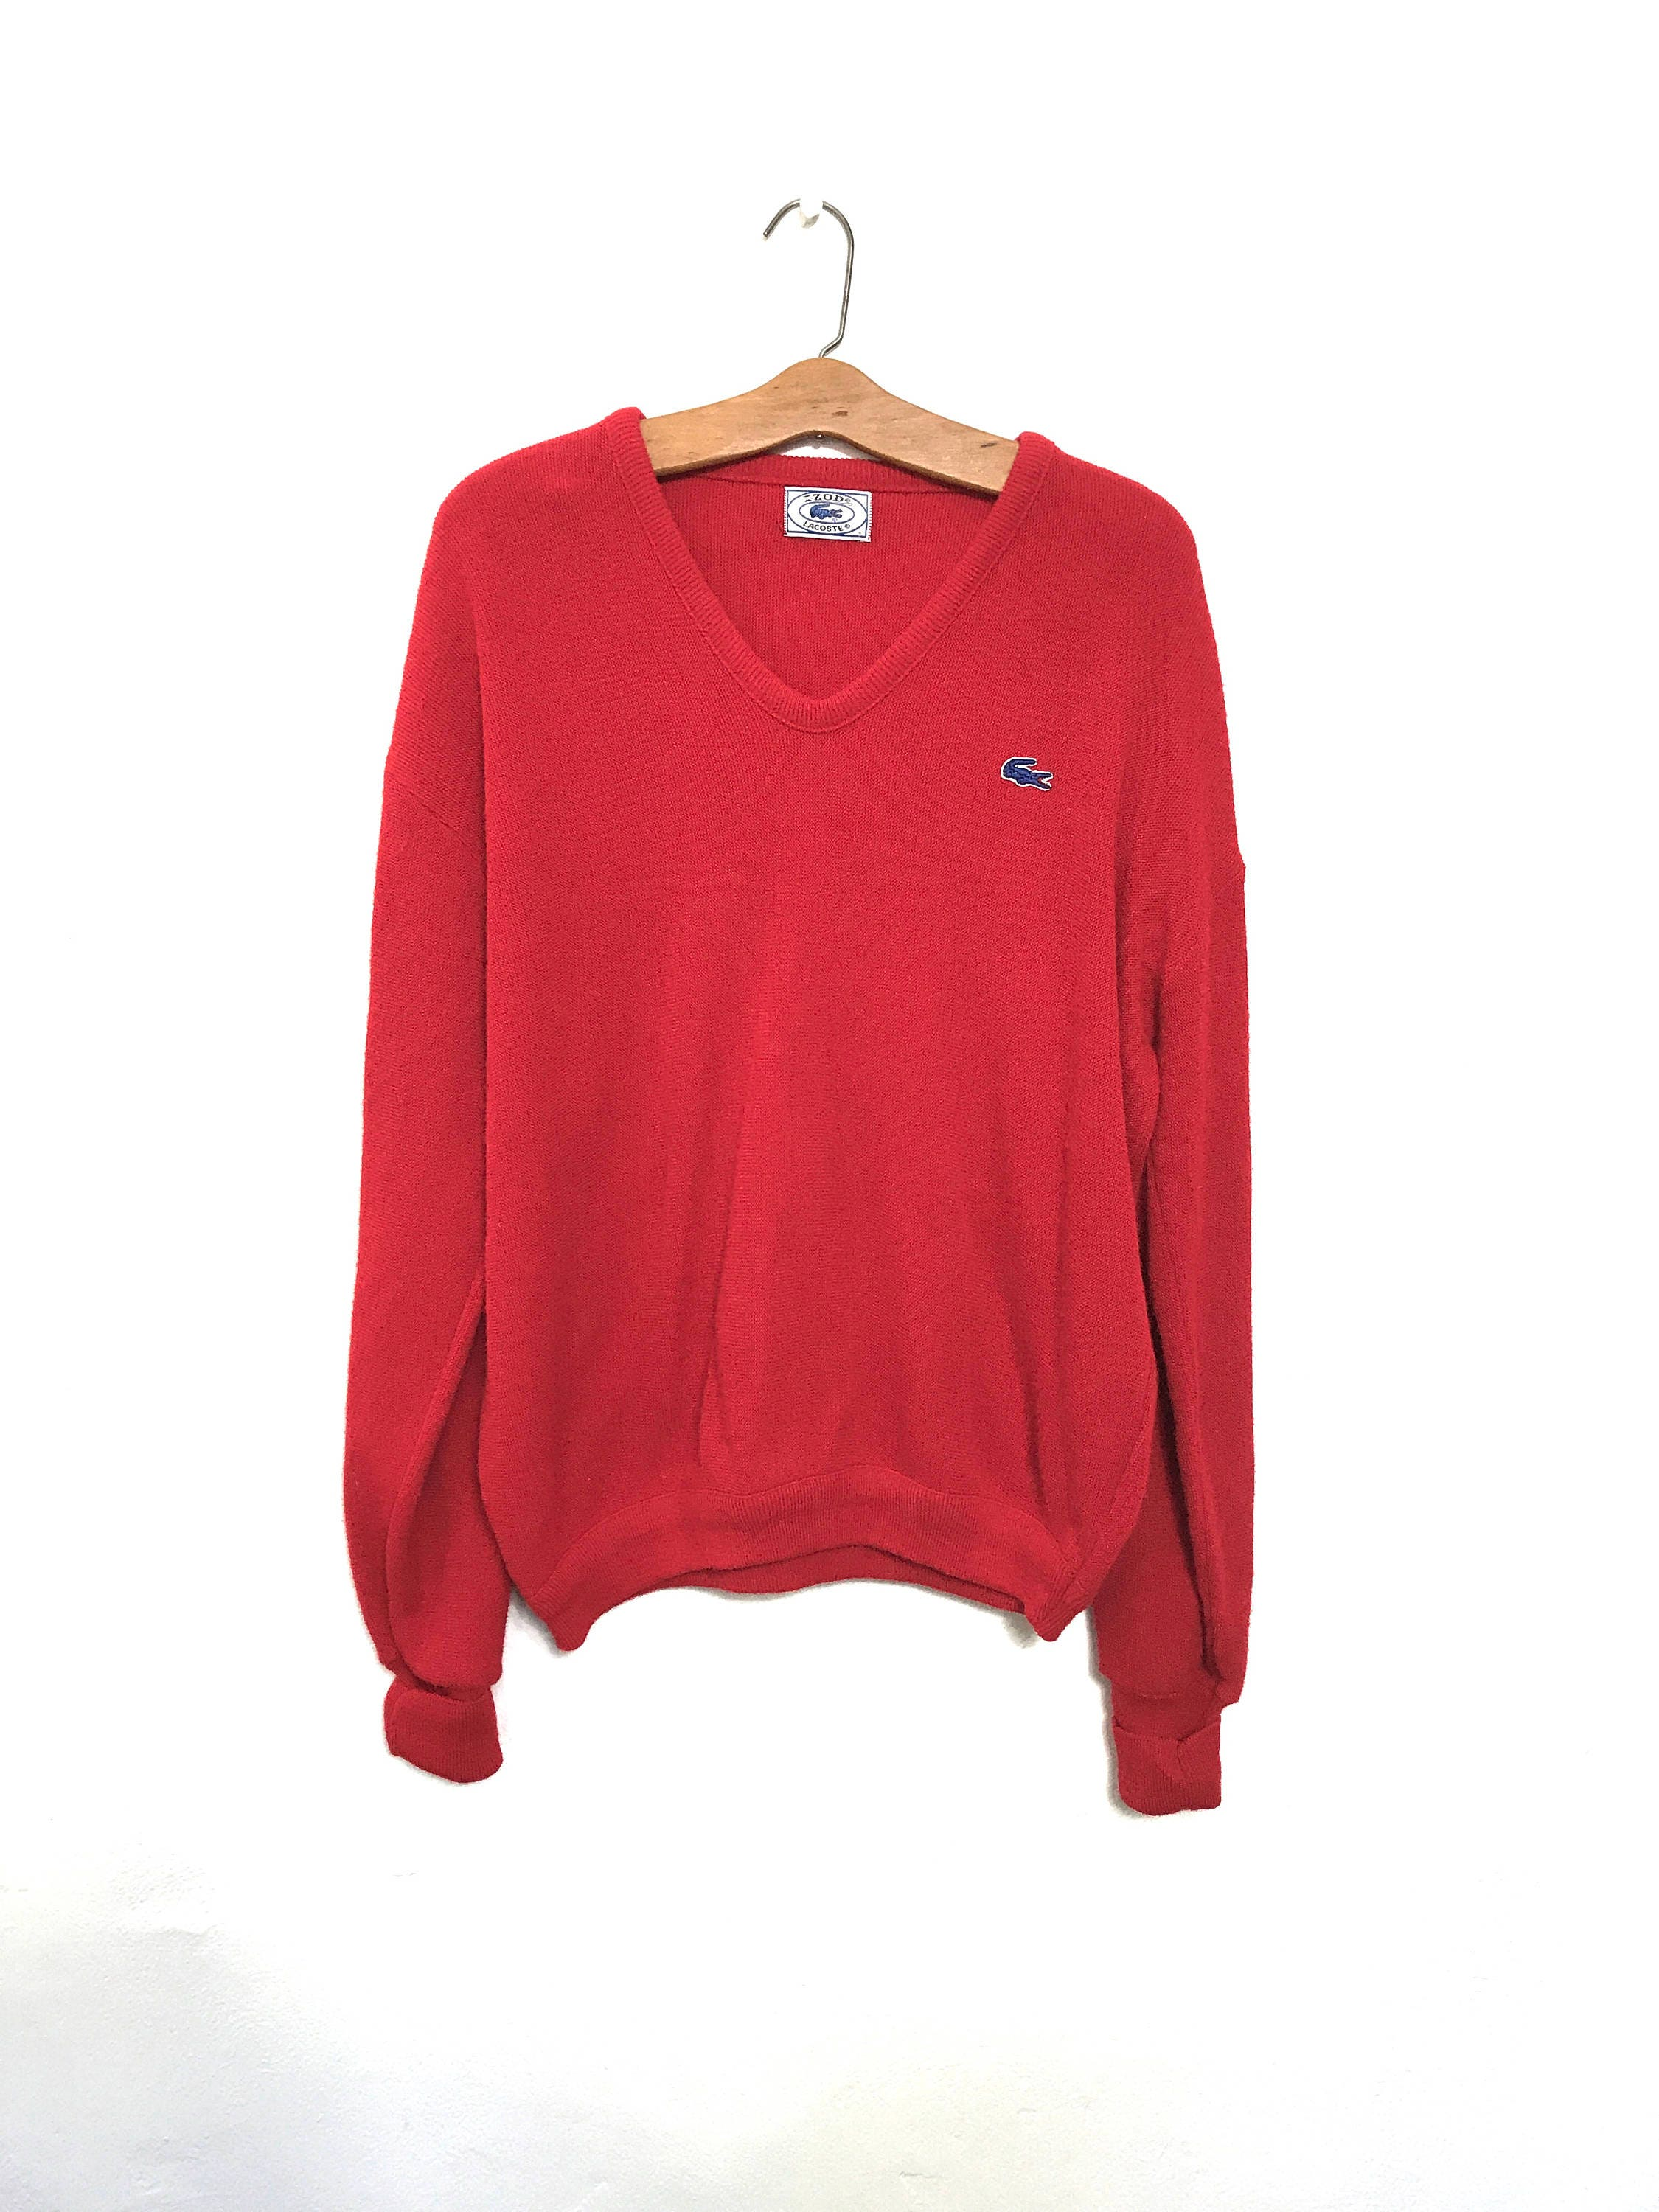 70's Izod Sweater Red Izod Sweater Izod Lacoste 80's